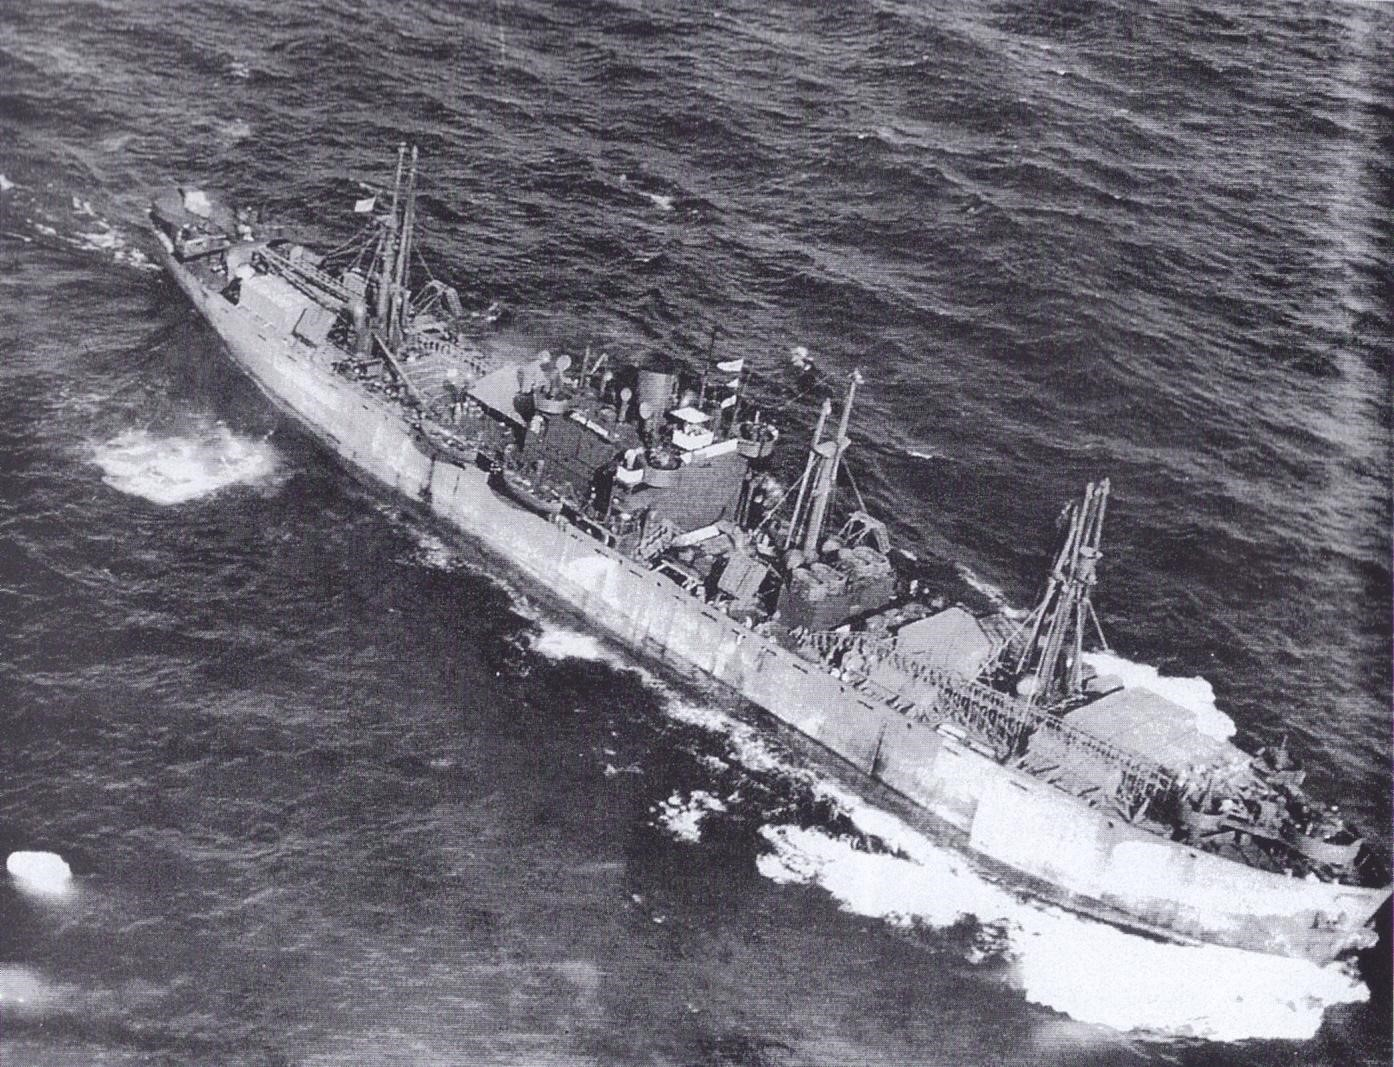 A 1943 photograph of the SS John W. Brown, a Liberty Ship departing from the United States with a deck full of cargo.